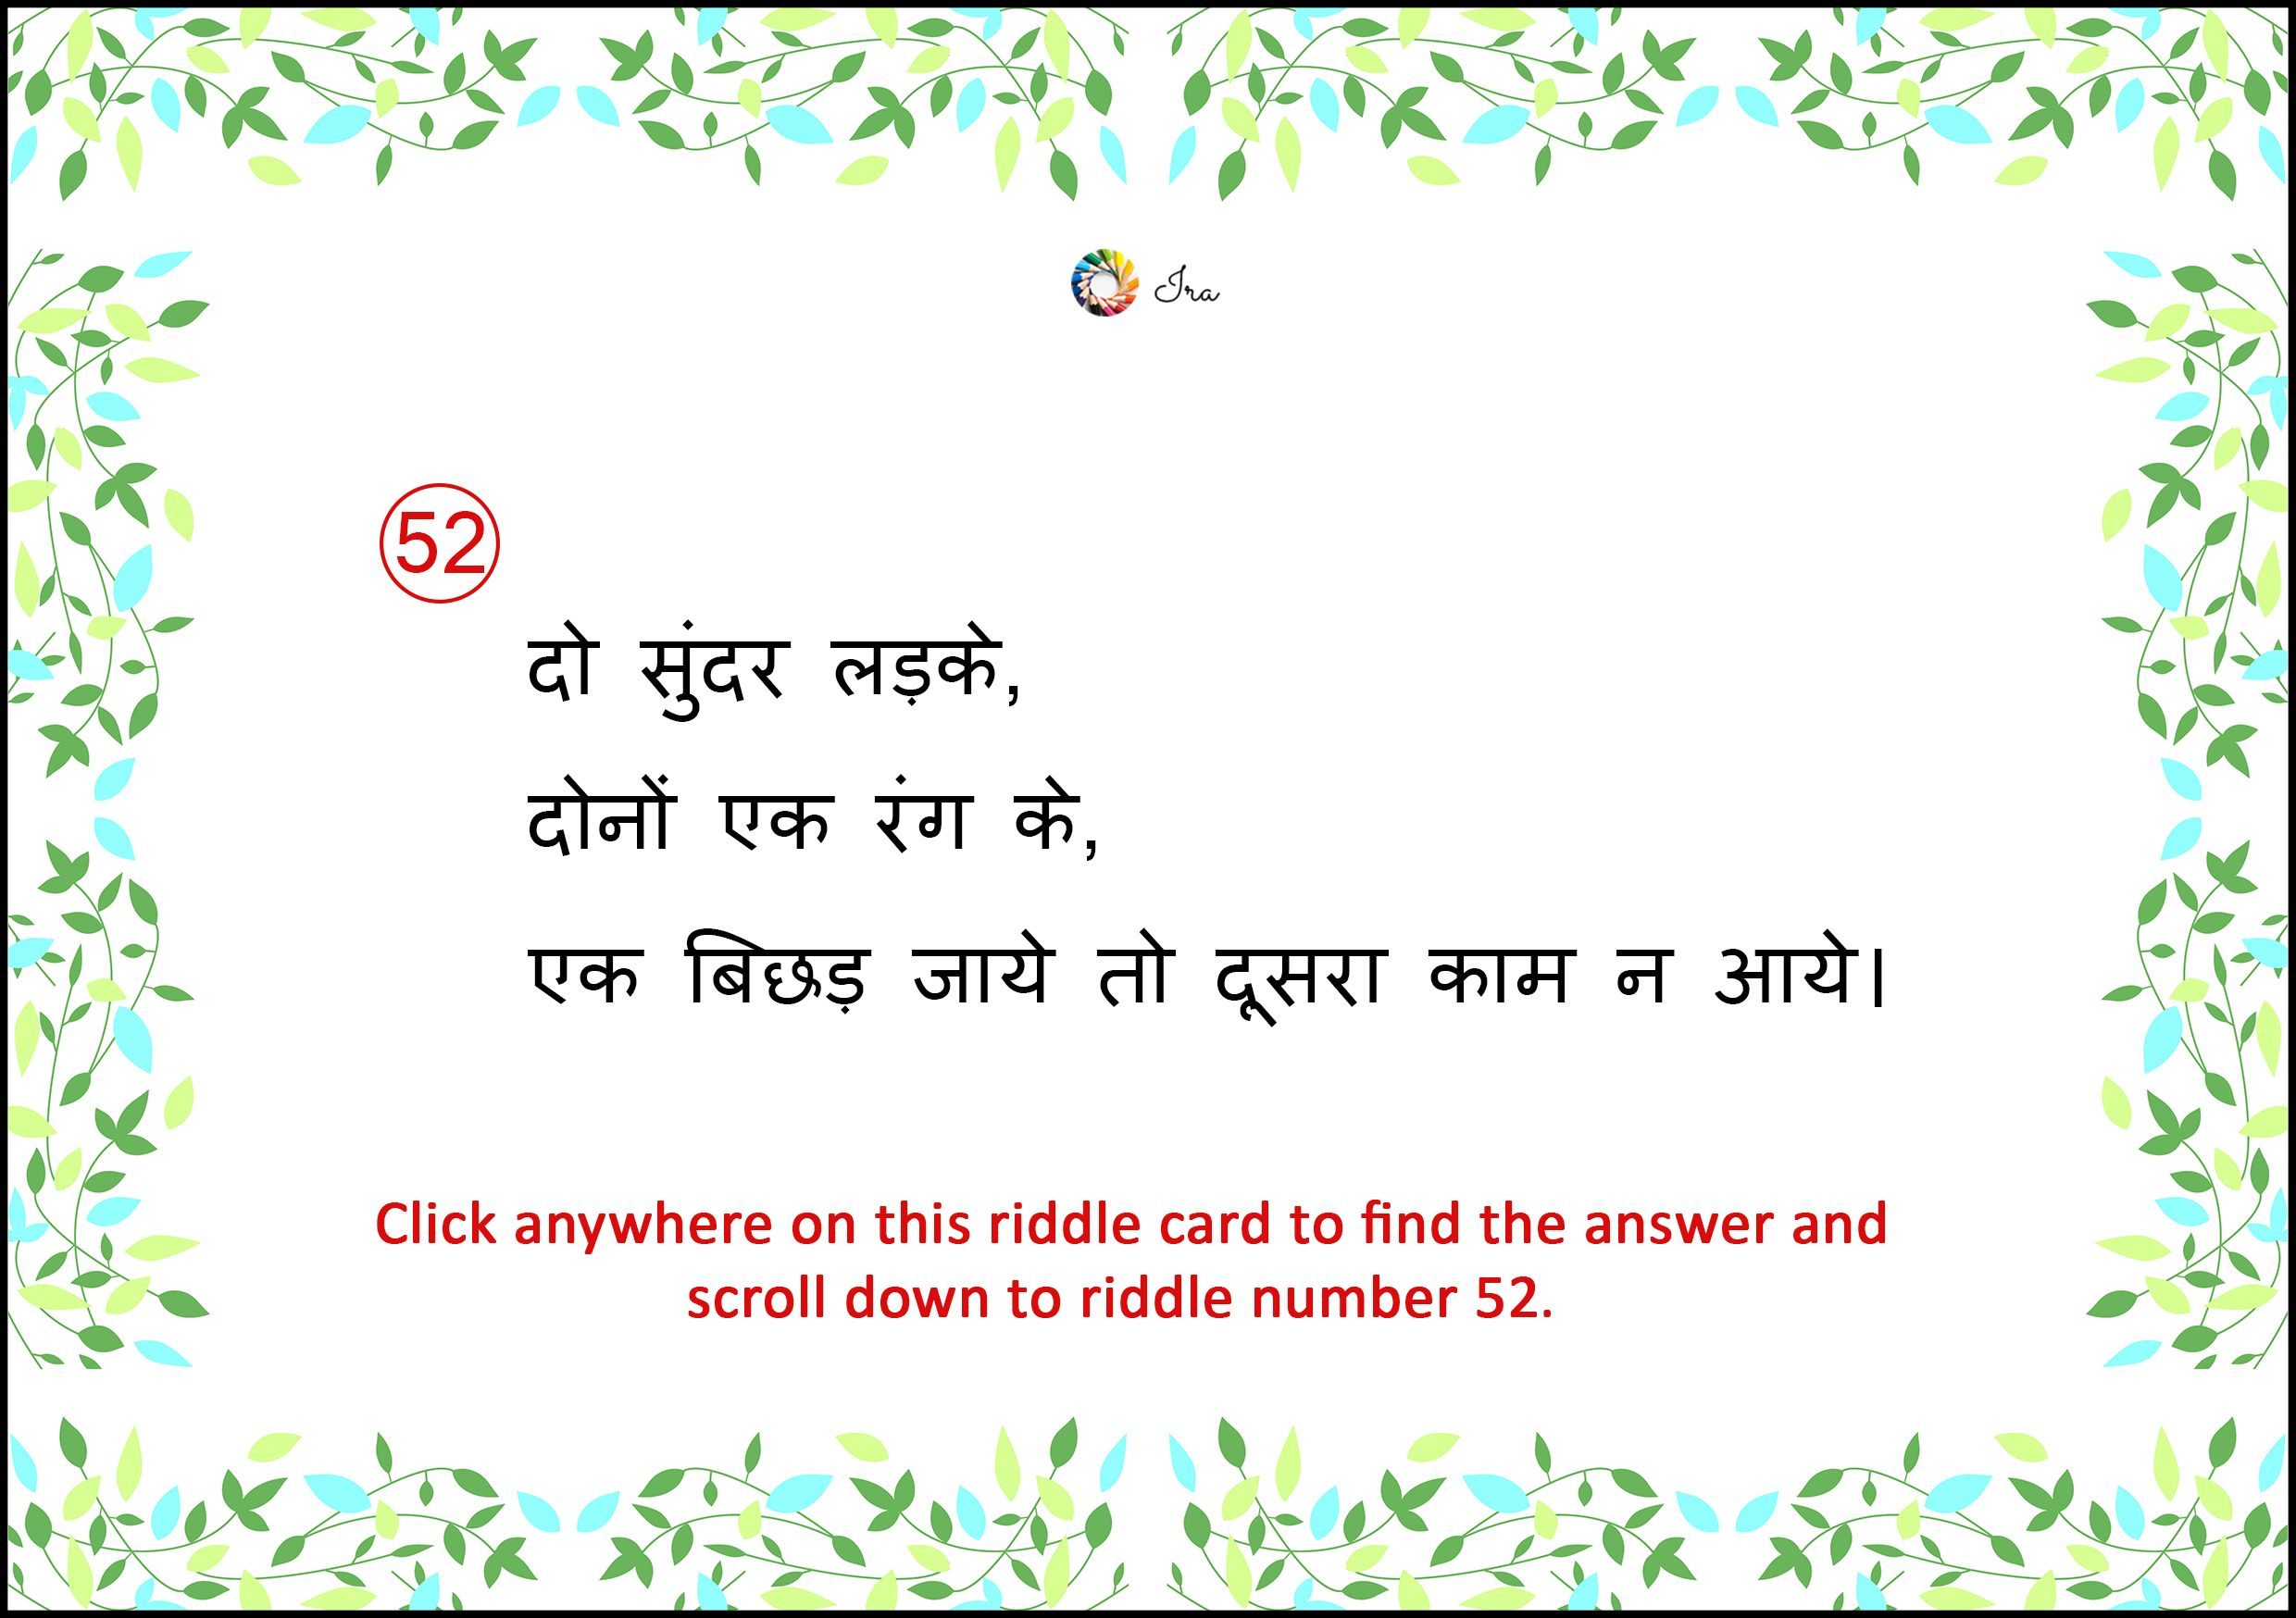 60 Rare Riddles In Hindi With Answers